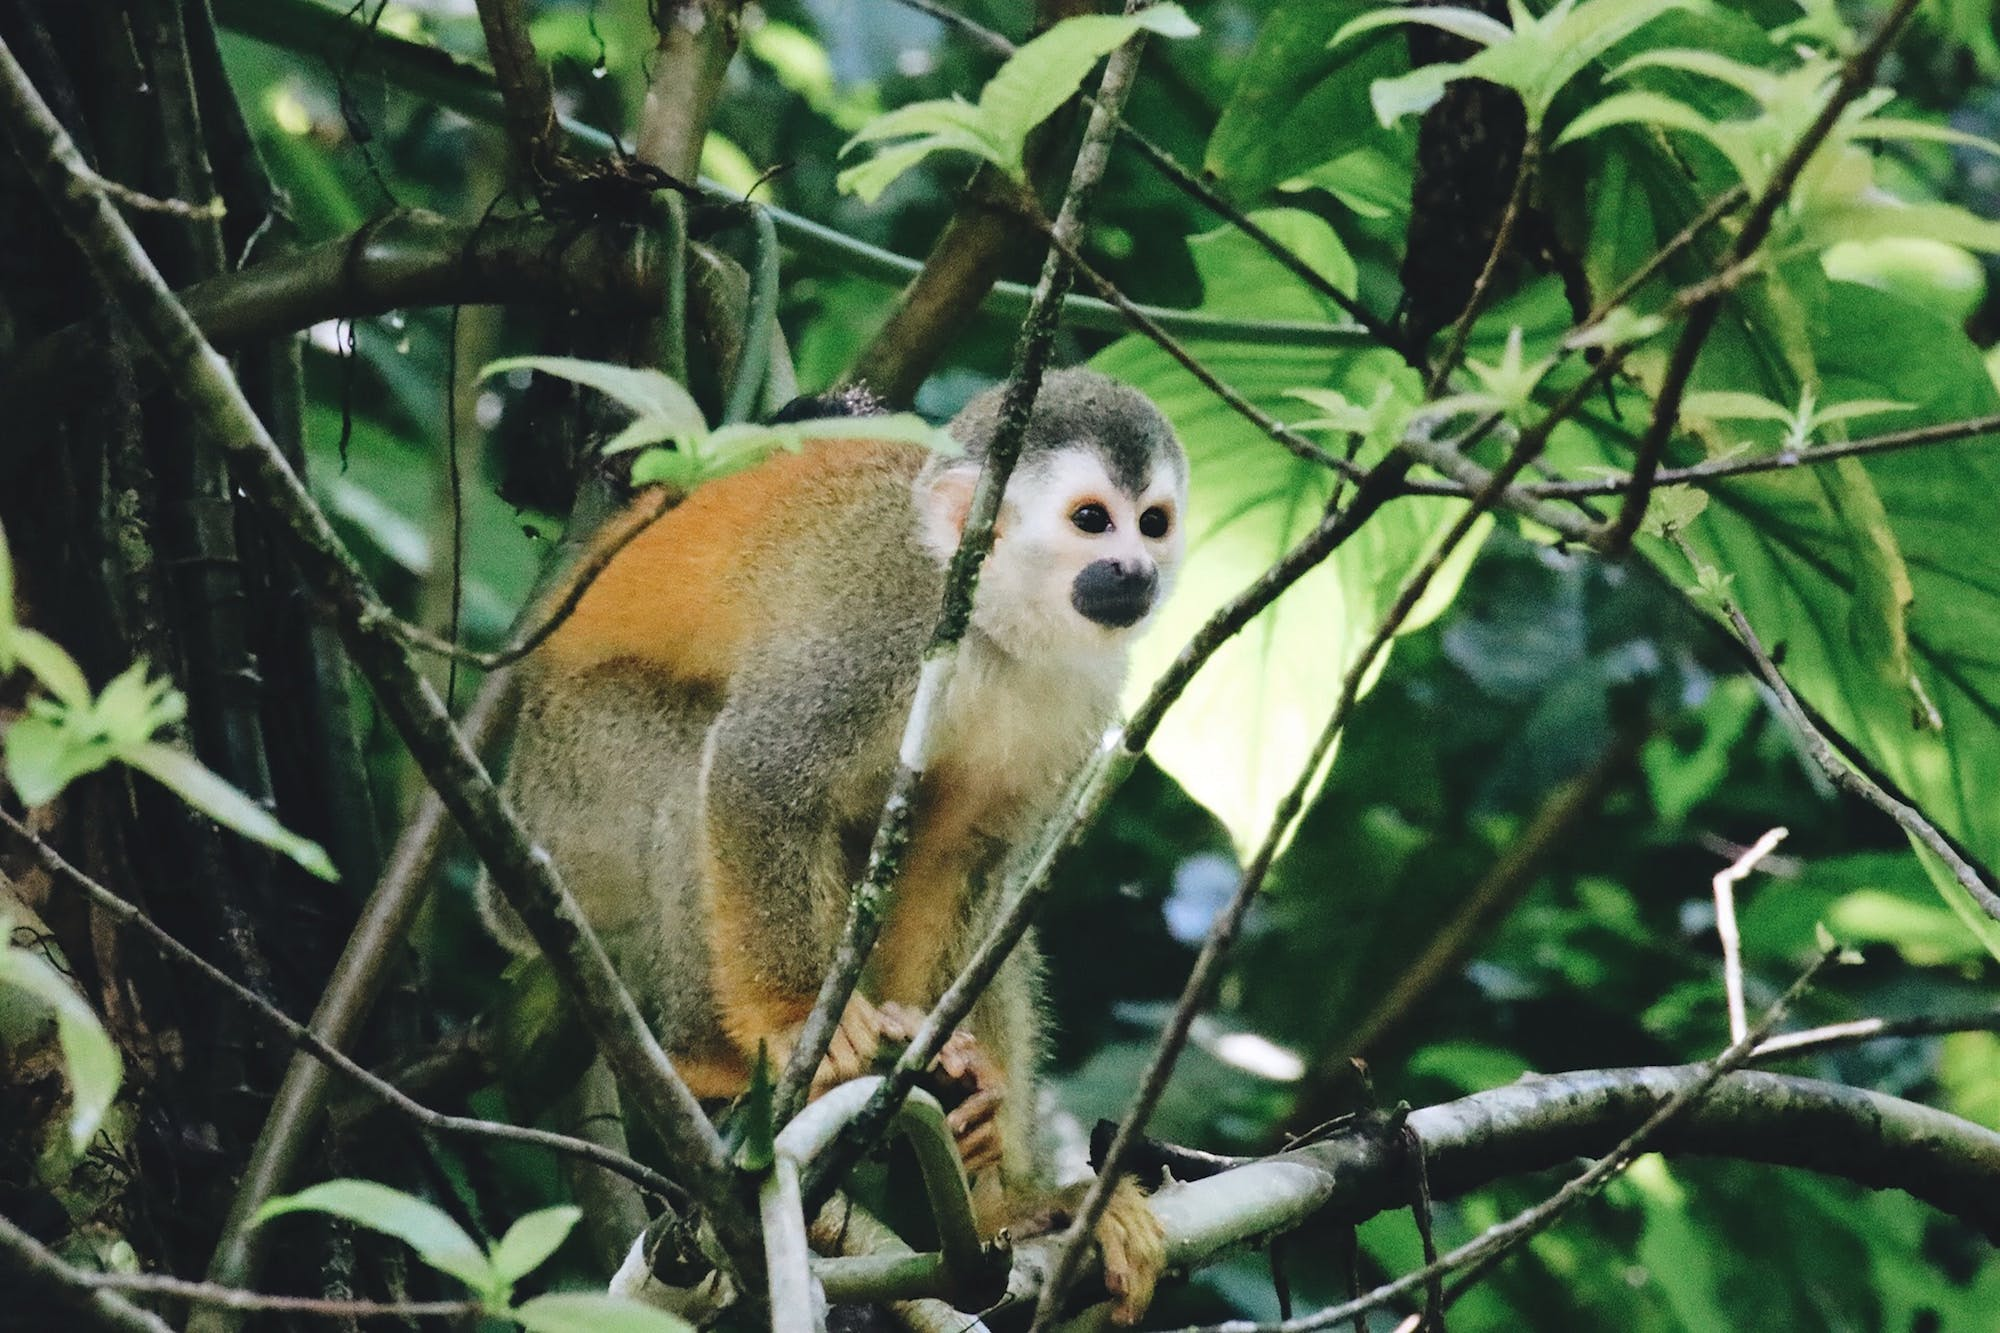 Monkey in a tree